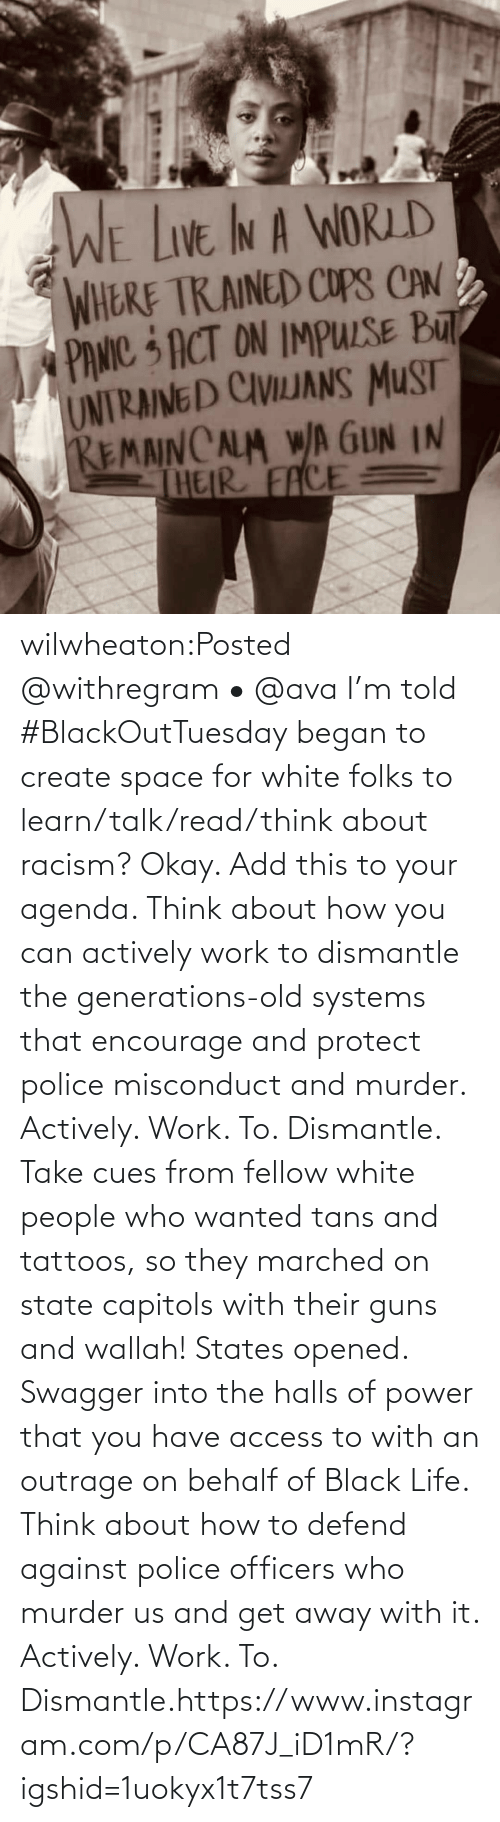 states: wilwheaton:Posted @withregram • @ava I'm told #BlackOutTuesday began to create space for white folks to learn/talk/read/think about racism? Okay. Add this to your agenda. Think about how you can actively work to dismantle the generations-old systems that encourage and protect police misconduct and murder. Actively. Work. To. Dismantle. Take cues from fellow white people who wanted tans and tattoos, so they marched on state capitols with their guns and wallah! States opened. Swagger into the halls of power that you have access to with an outrage on behalf of Black Life. Think about how to defend against police officers who murder us and get away with it. Actively. Work. To. Dismantle.https://www.instagram.com/p/CA87J_iD1mR/?igshid=1uokyx1t7tss7